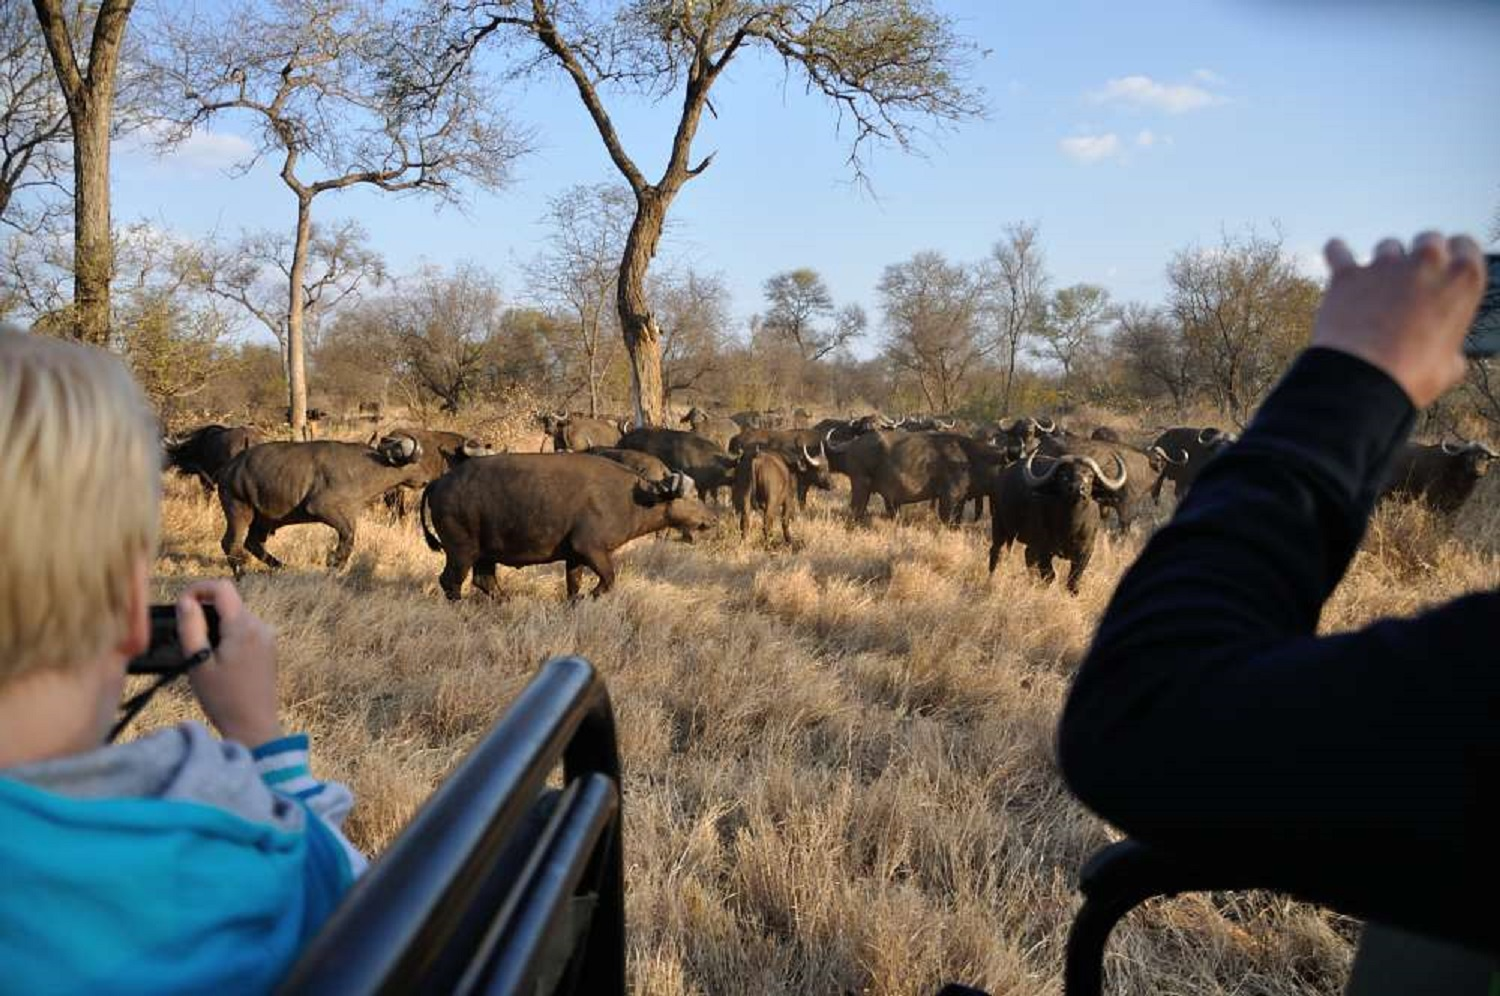 Kids Love Travel: Sightseeing in South Africa with kids